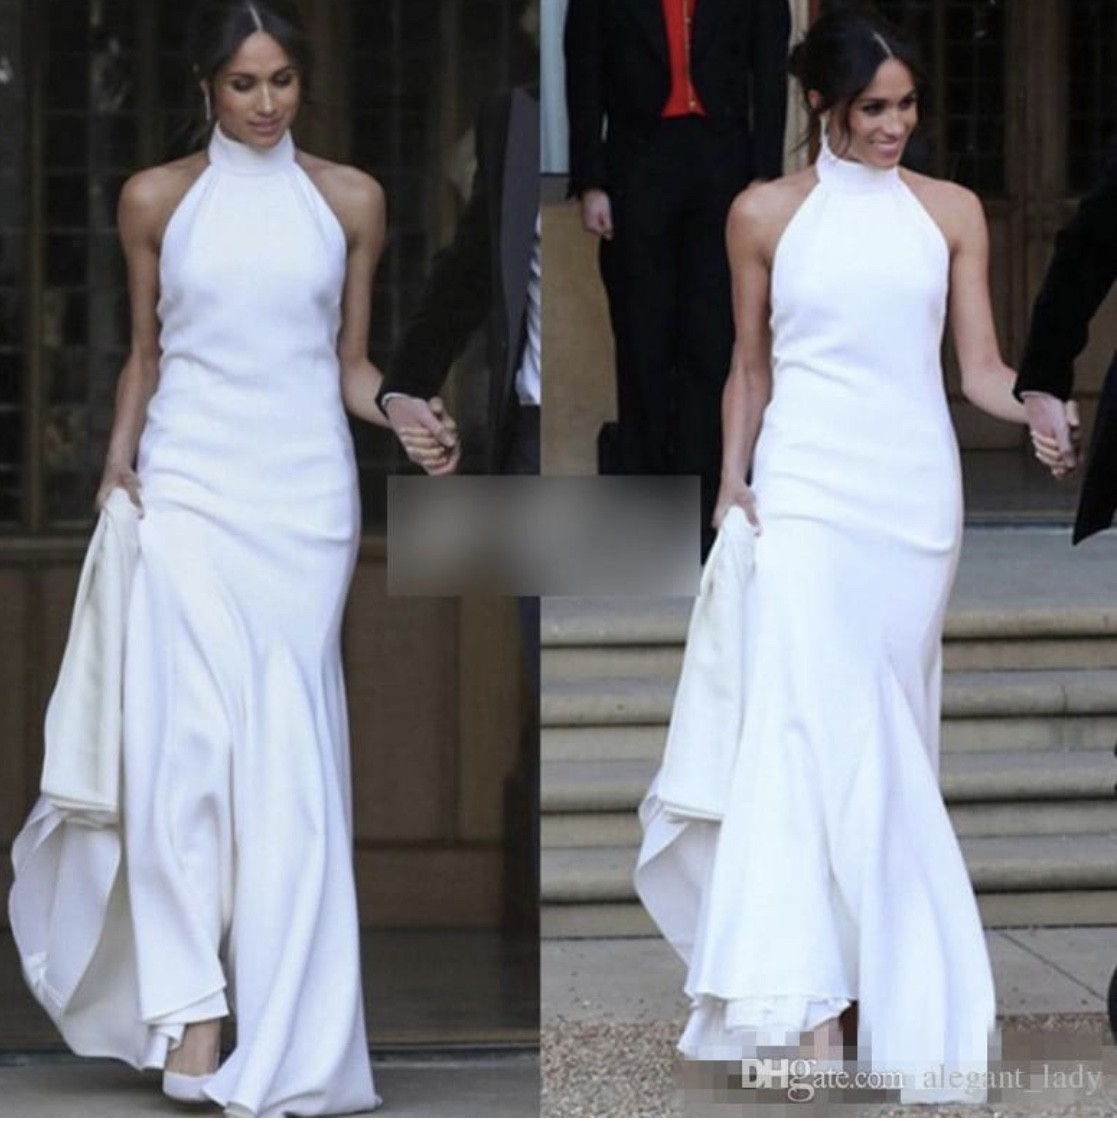 stella mccartney meghan markle dress off 71 buy nova betel contabilidade